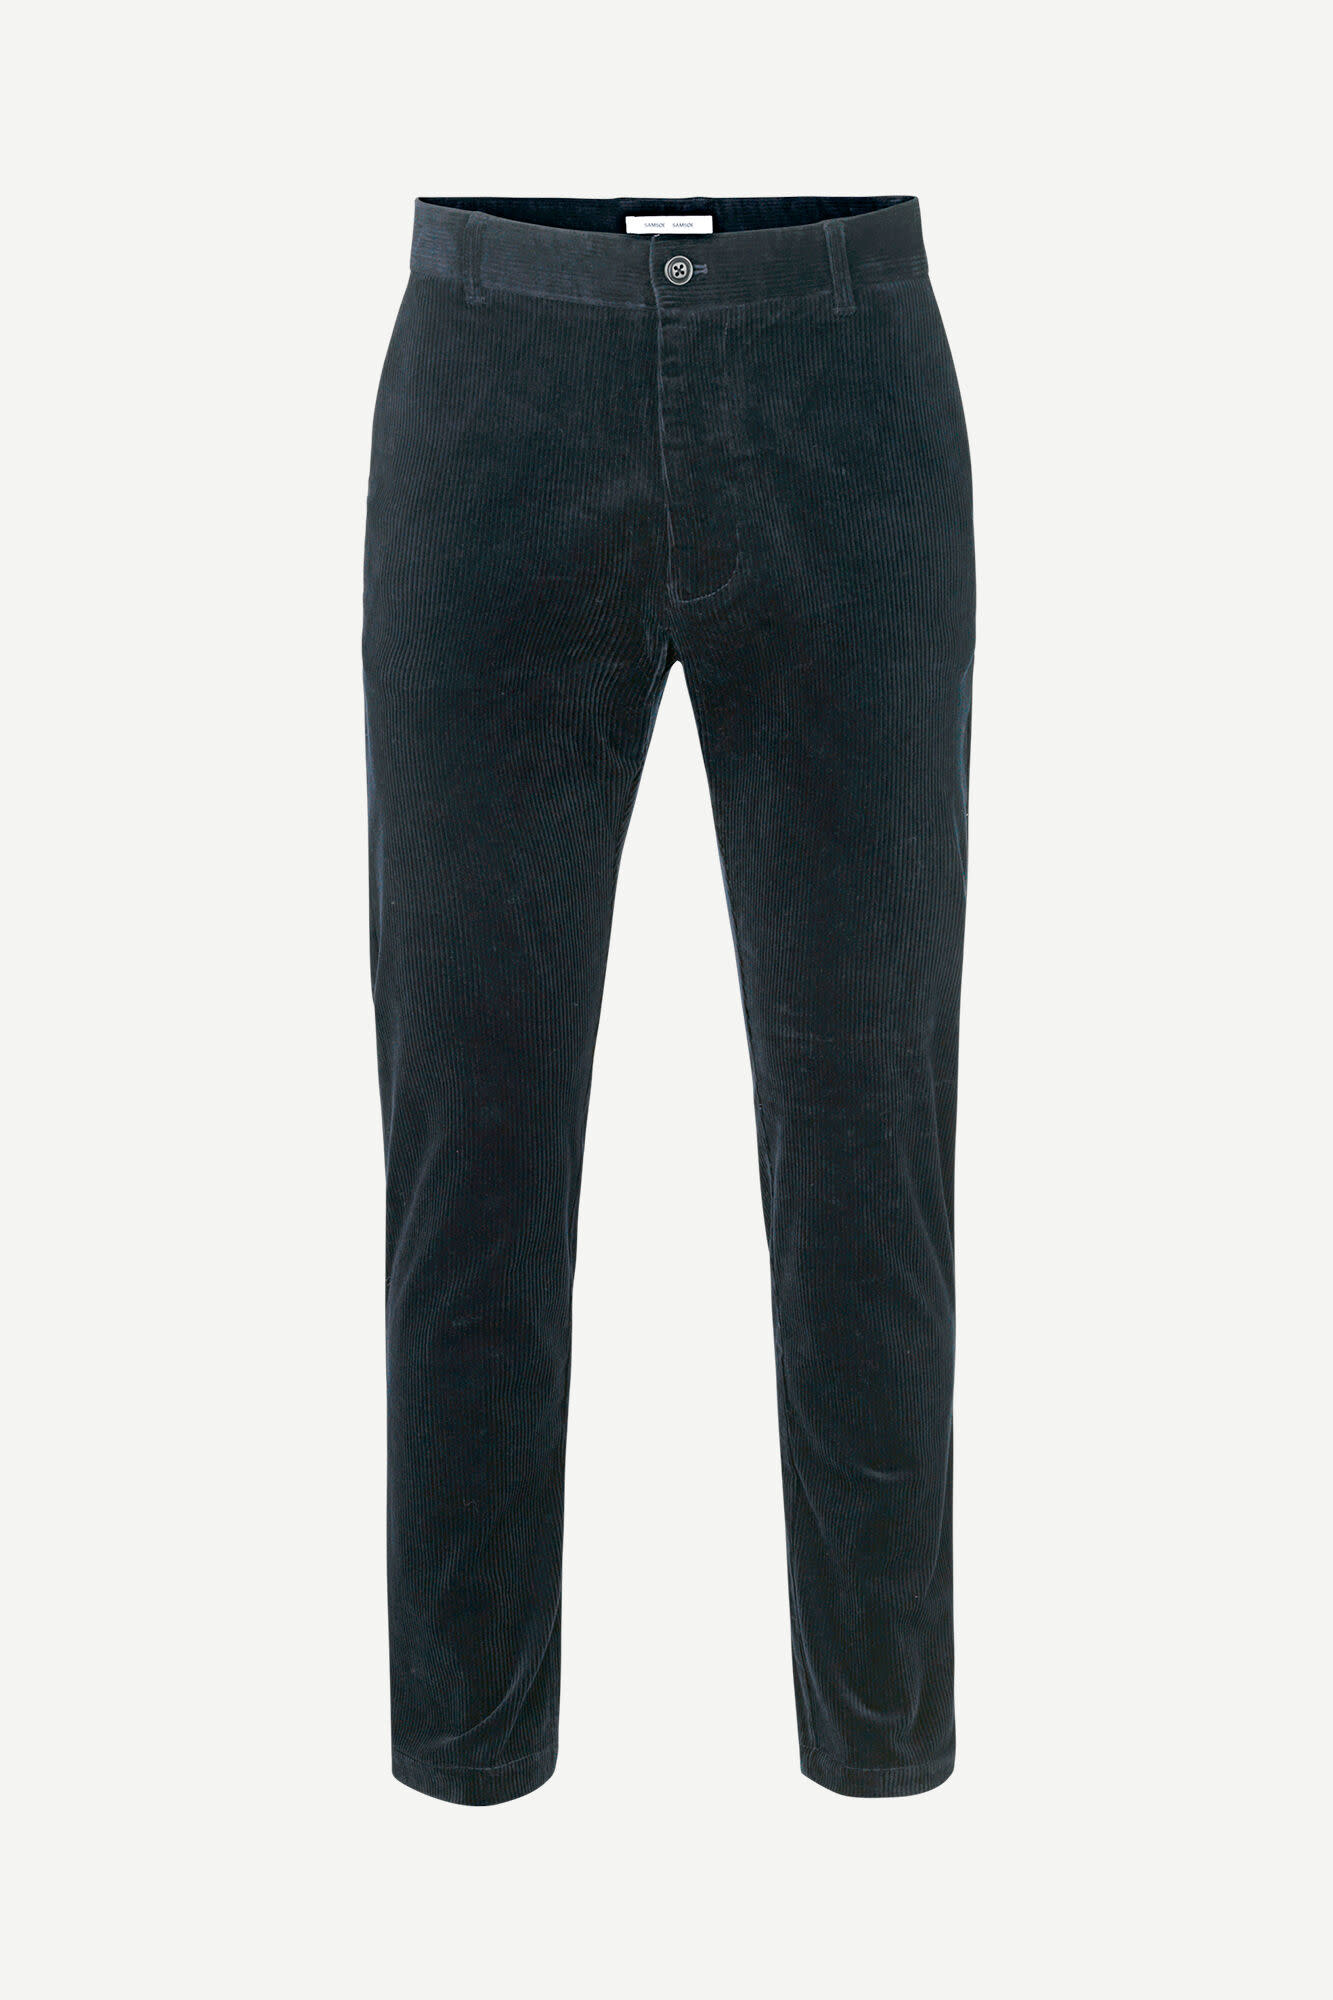 Andy X  Trouser Sky Captain Blue 11046-1